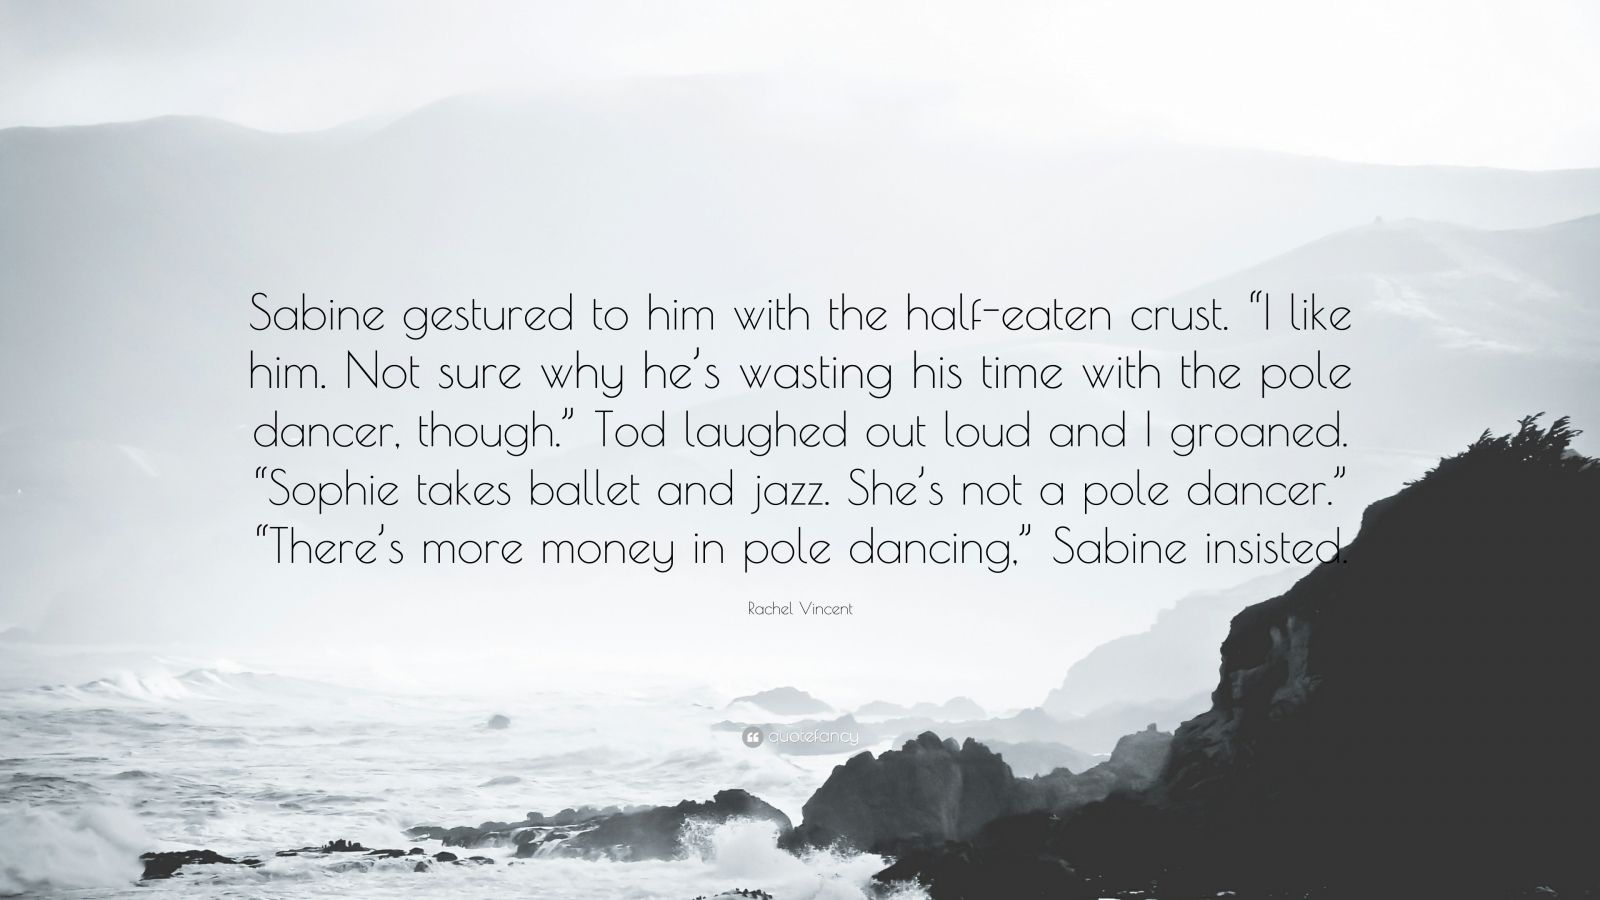 """Rachel Vincent Quote: """"Sabine gestured to him with the half-eaten crust. """"I like him. Not sure why he's wasting his time with the pole dancer, though."""" Tod laughed out loud and I groaned. """"Sophie takes ballet and jazz. She's not a pole dancer."""" """"There's more money in pole dancing,"""" Sabine insisted."""""""